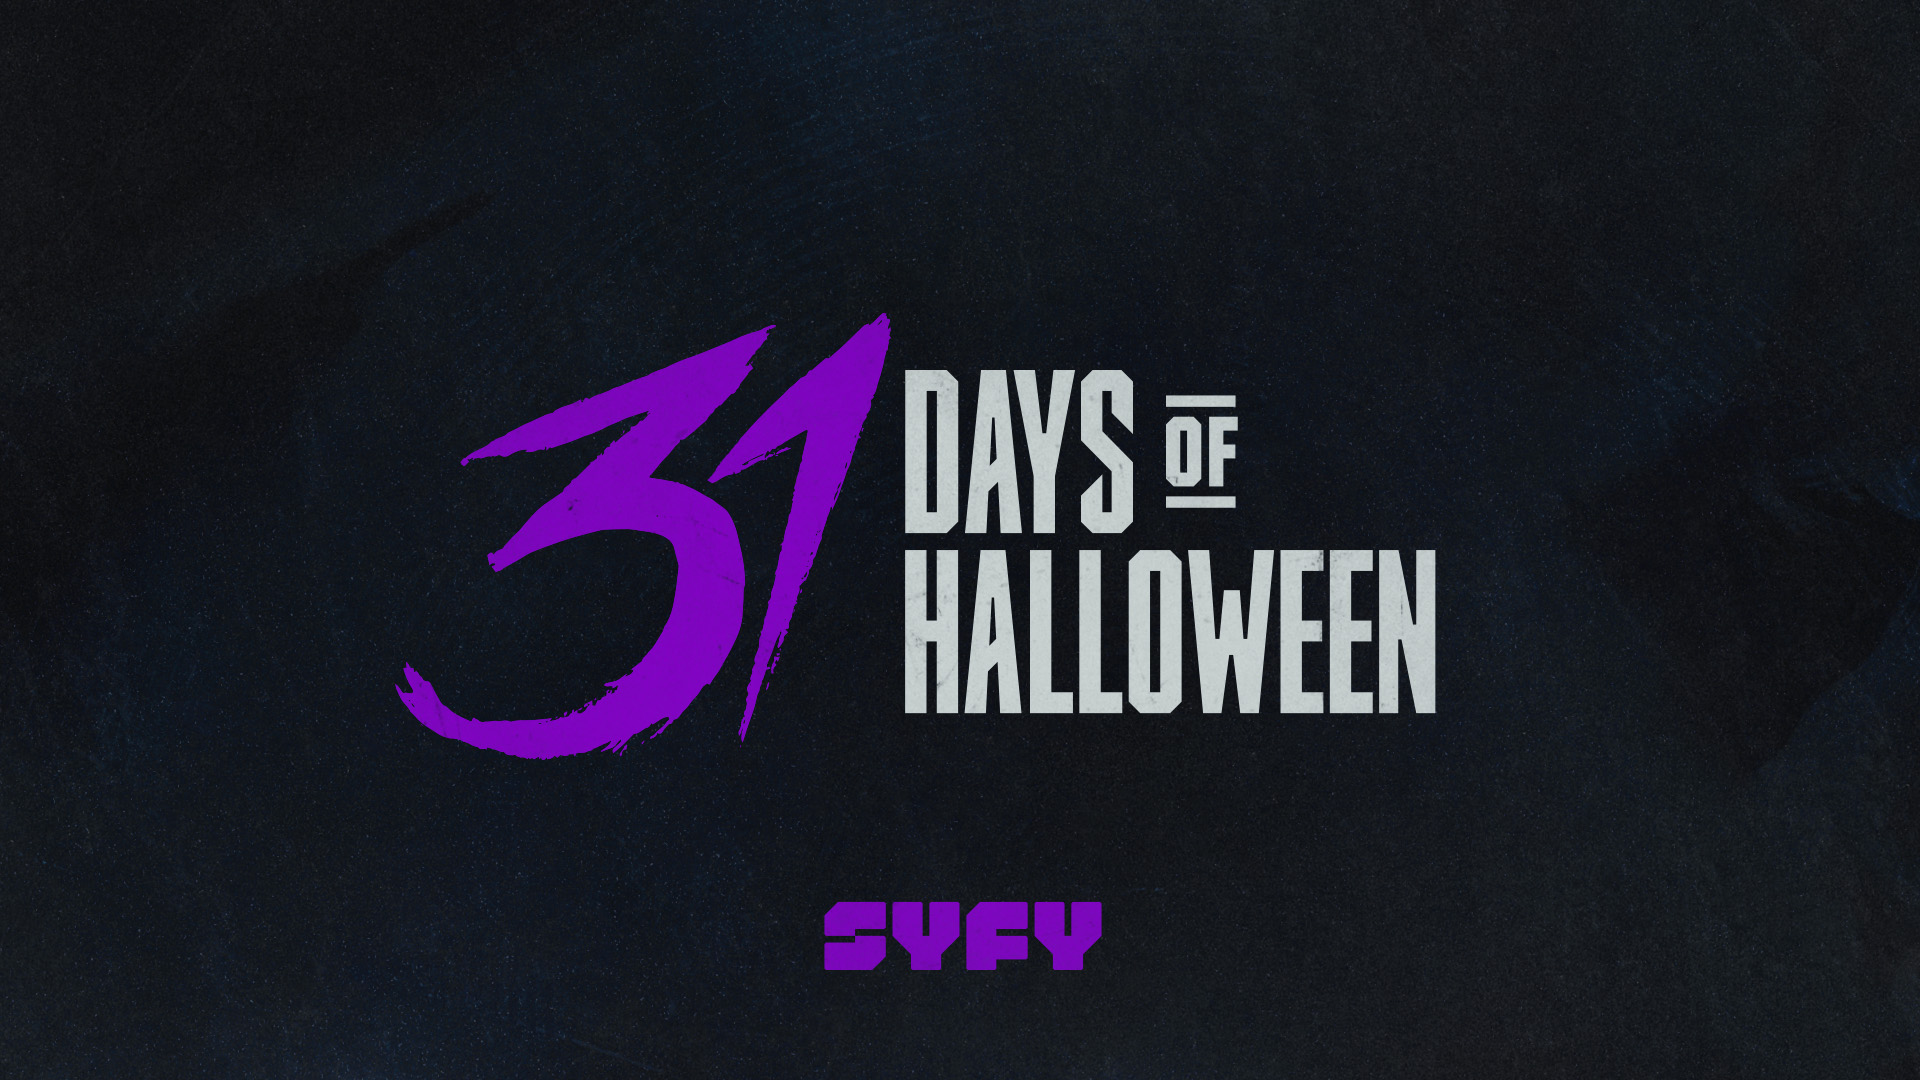 31 Days Of Halloween Amc 2020 SYFY's Halloween Lineup Includes Themed Movie Marathons Throughout